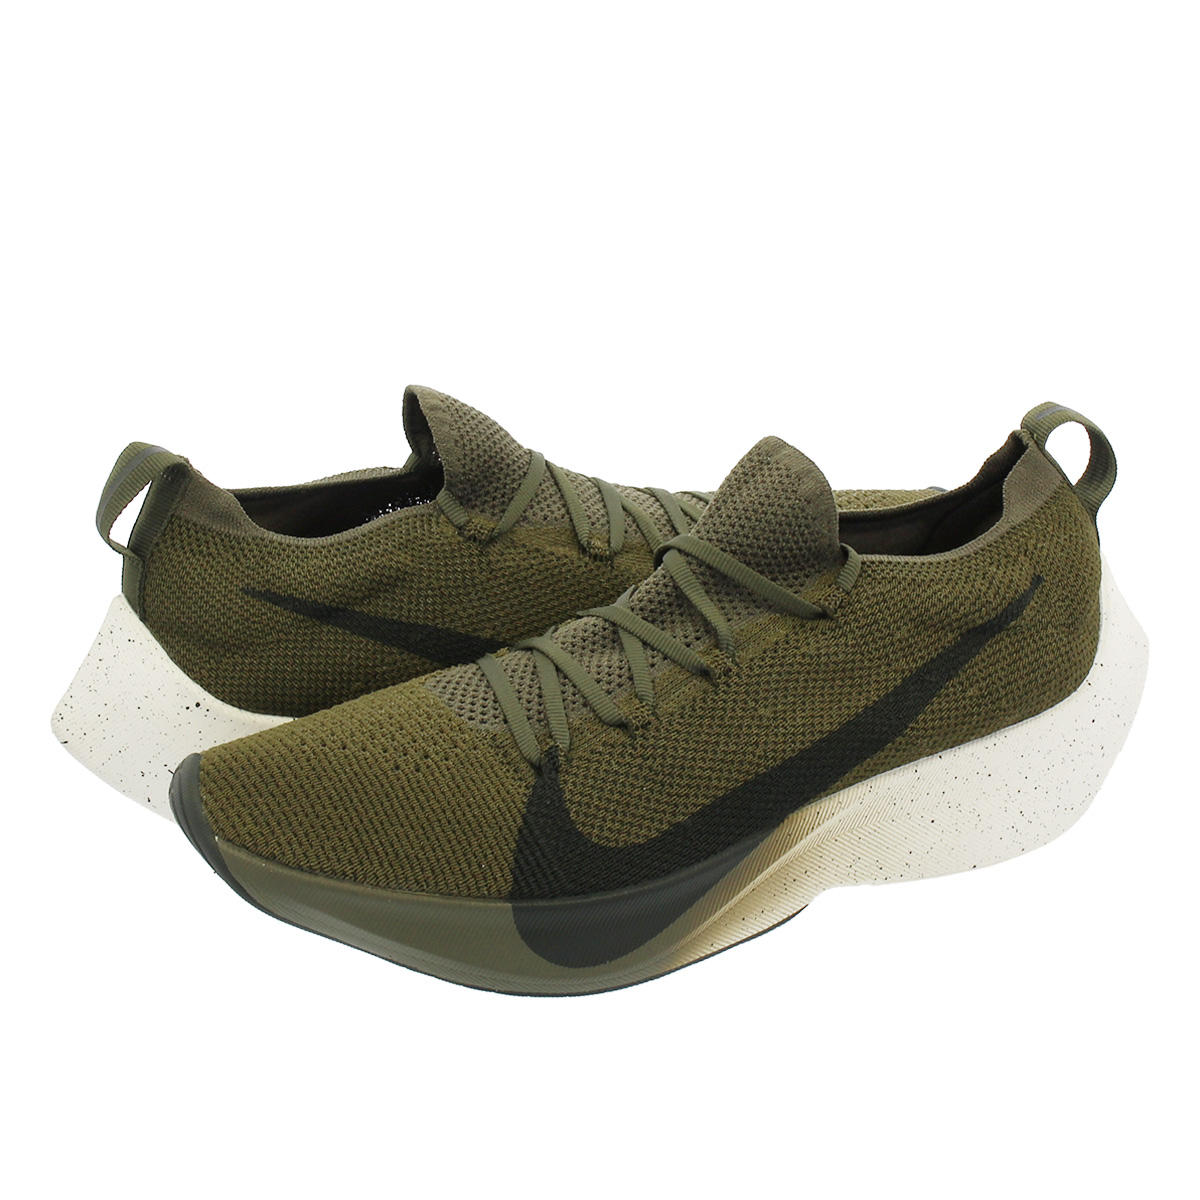 c8580967a328 NIKE VAPOR STREET FLYKNIT Nike vapor street fried food knit MEDIUM OLIVE  SEQUOIA SAIL aq1763-201